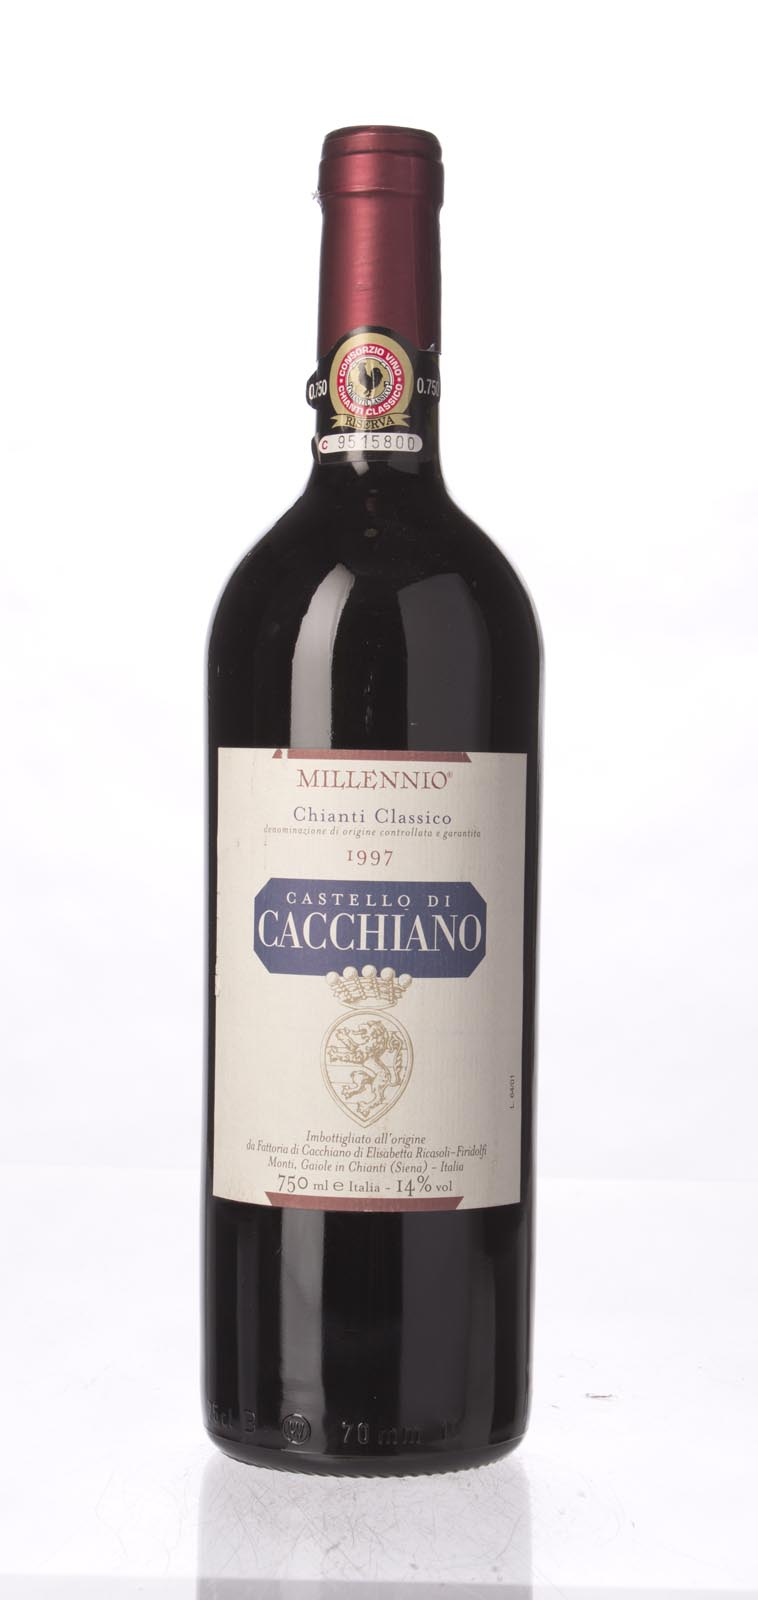 Castello di Cacchiano Chianti Classico Riserva Millennio 1997, 750mL (WA90, ST91) from The BPW - Merchants of rare and fine wines.